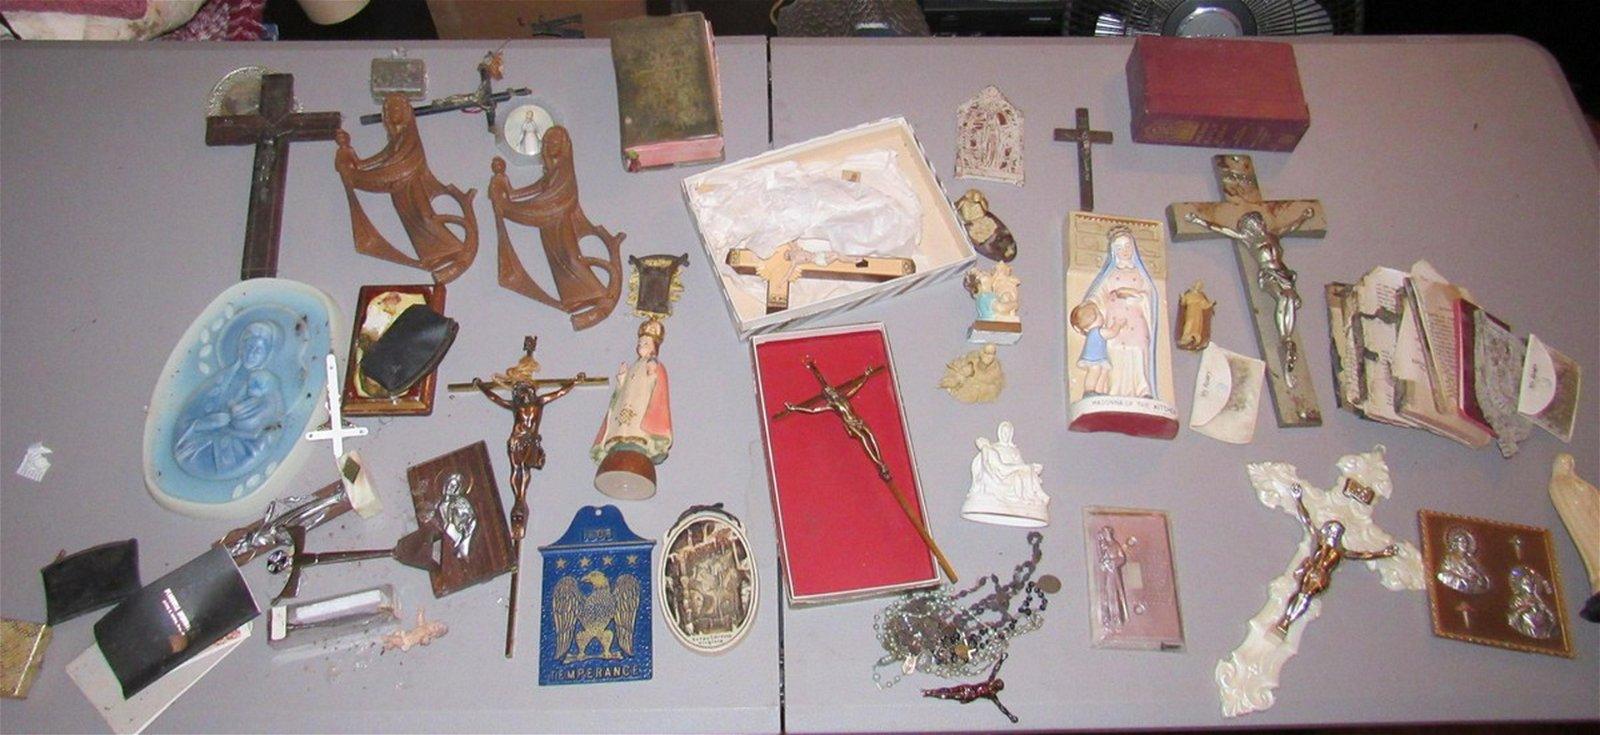 Table Contents of Religious Items